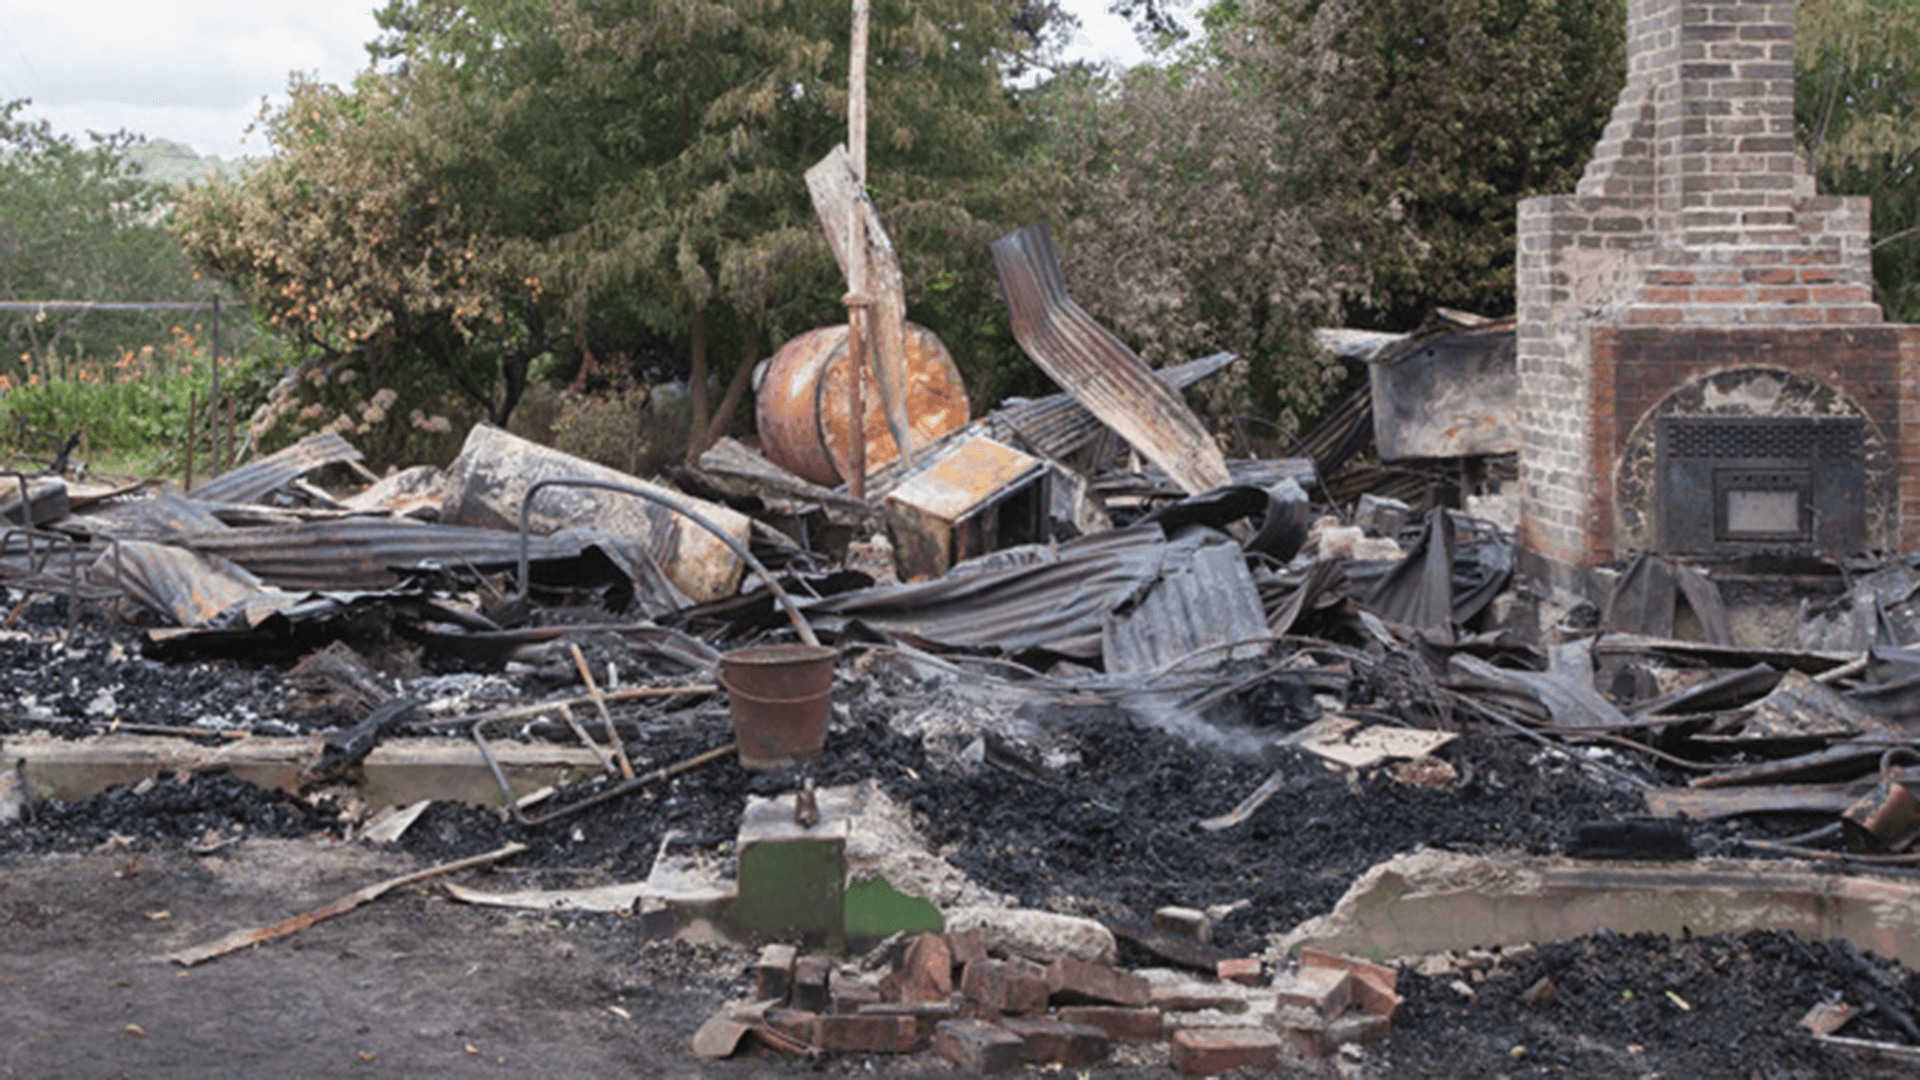 The farmhouse at 290 Whatatutu Road, destroyed by fire on 25 January 2013.